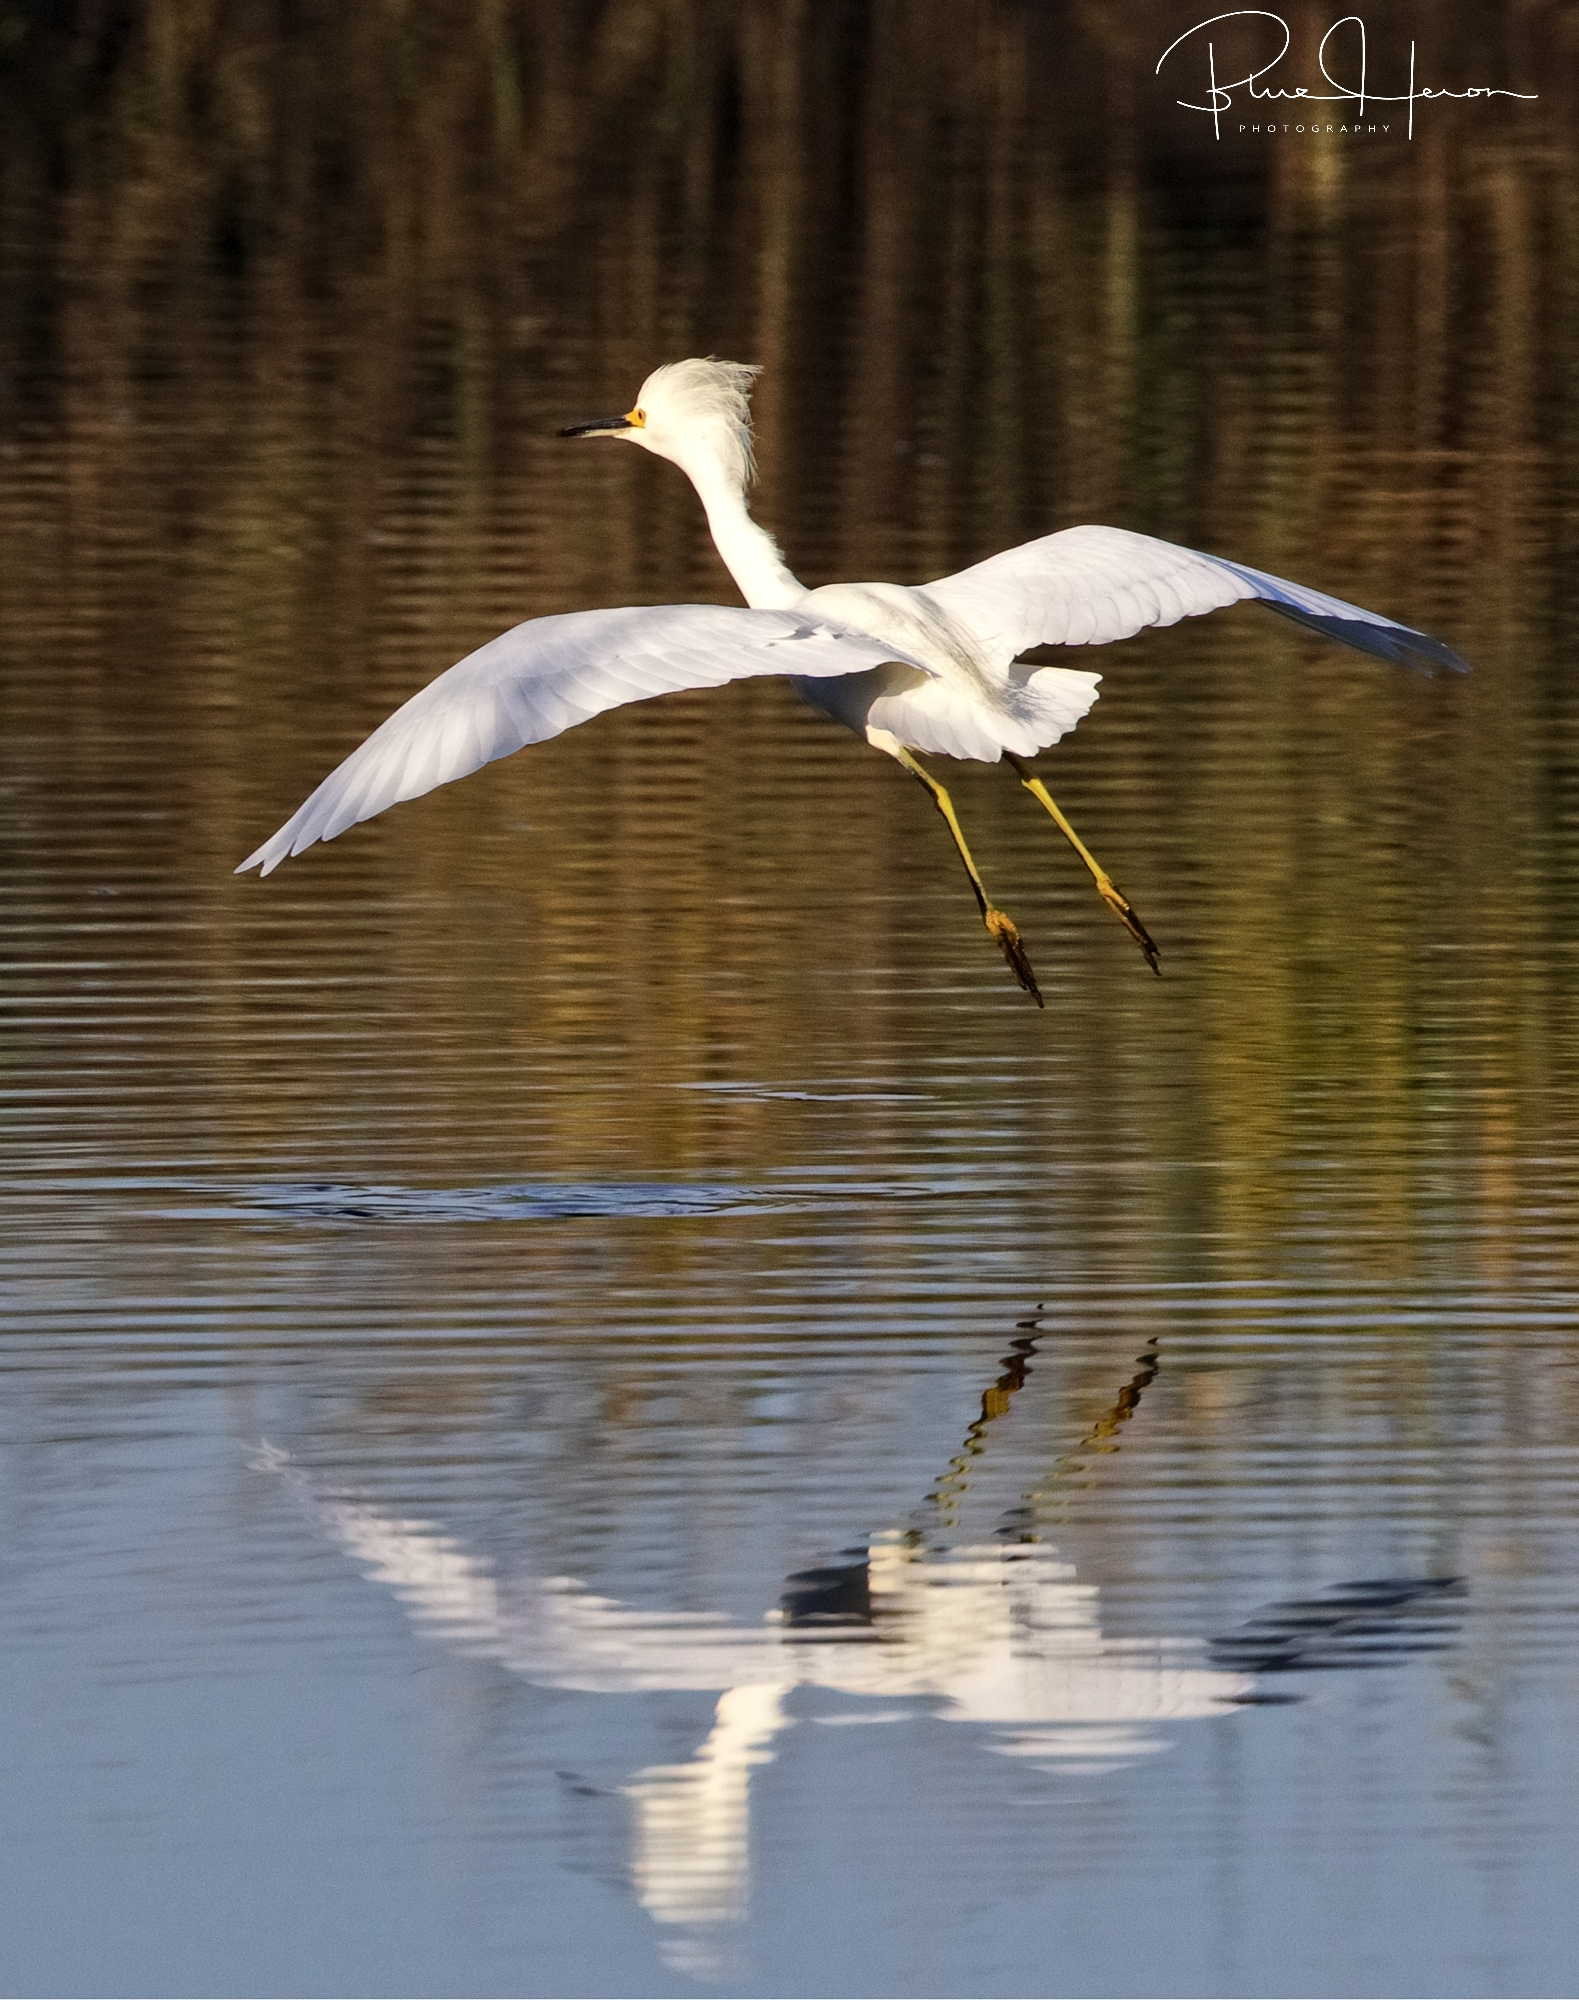 Wheeee...the only snow we are seeing is Snowy Egrets!